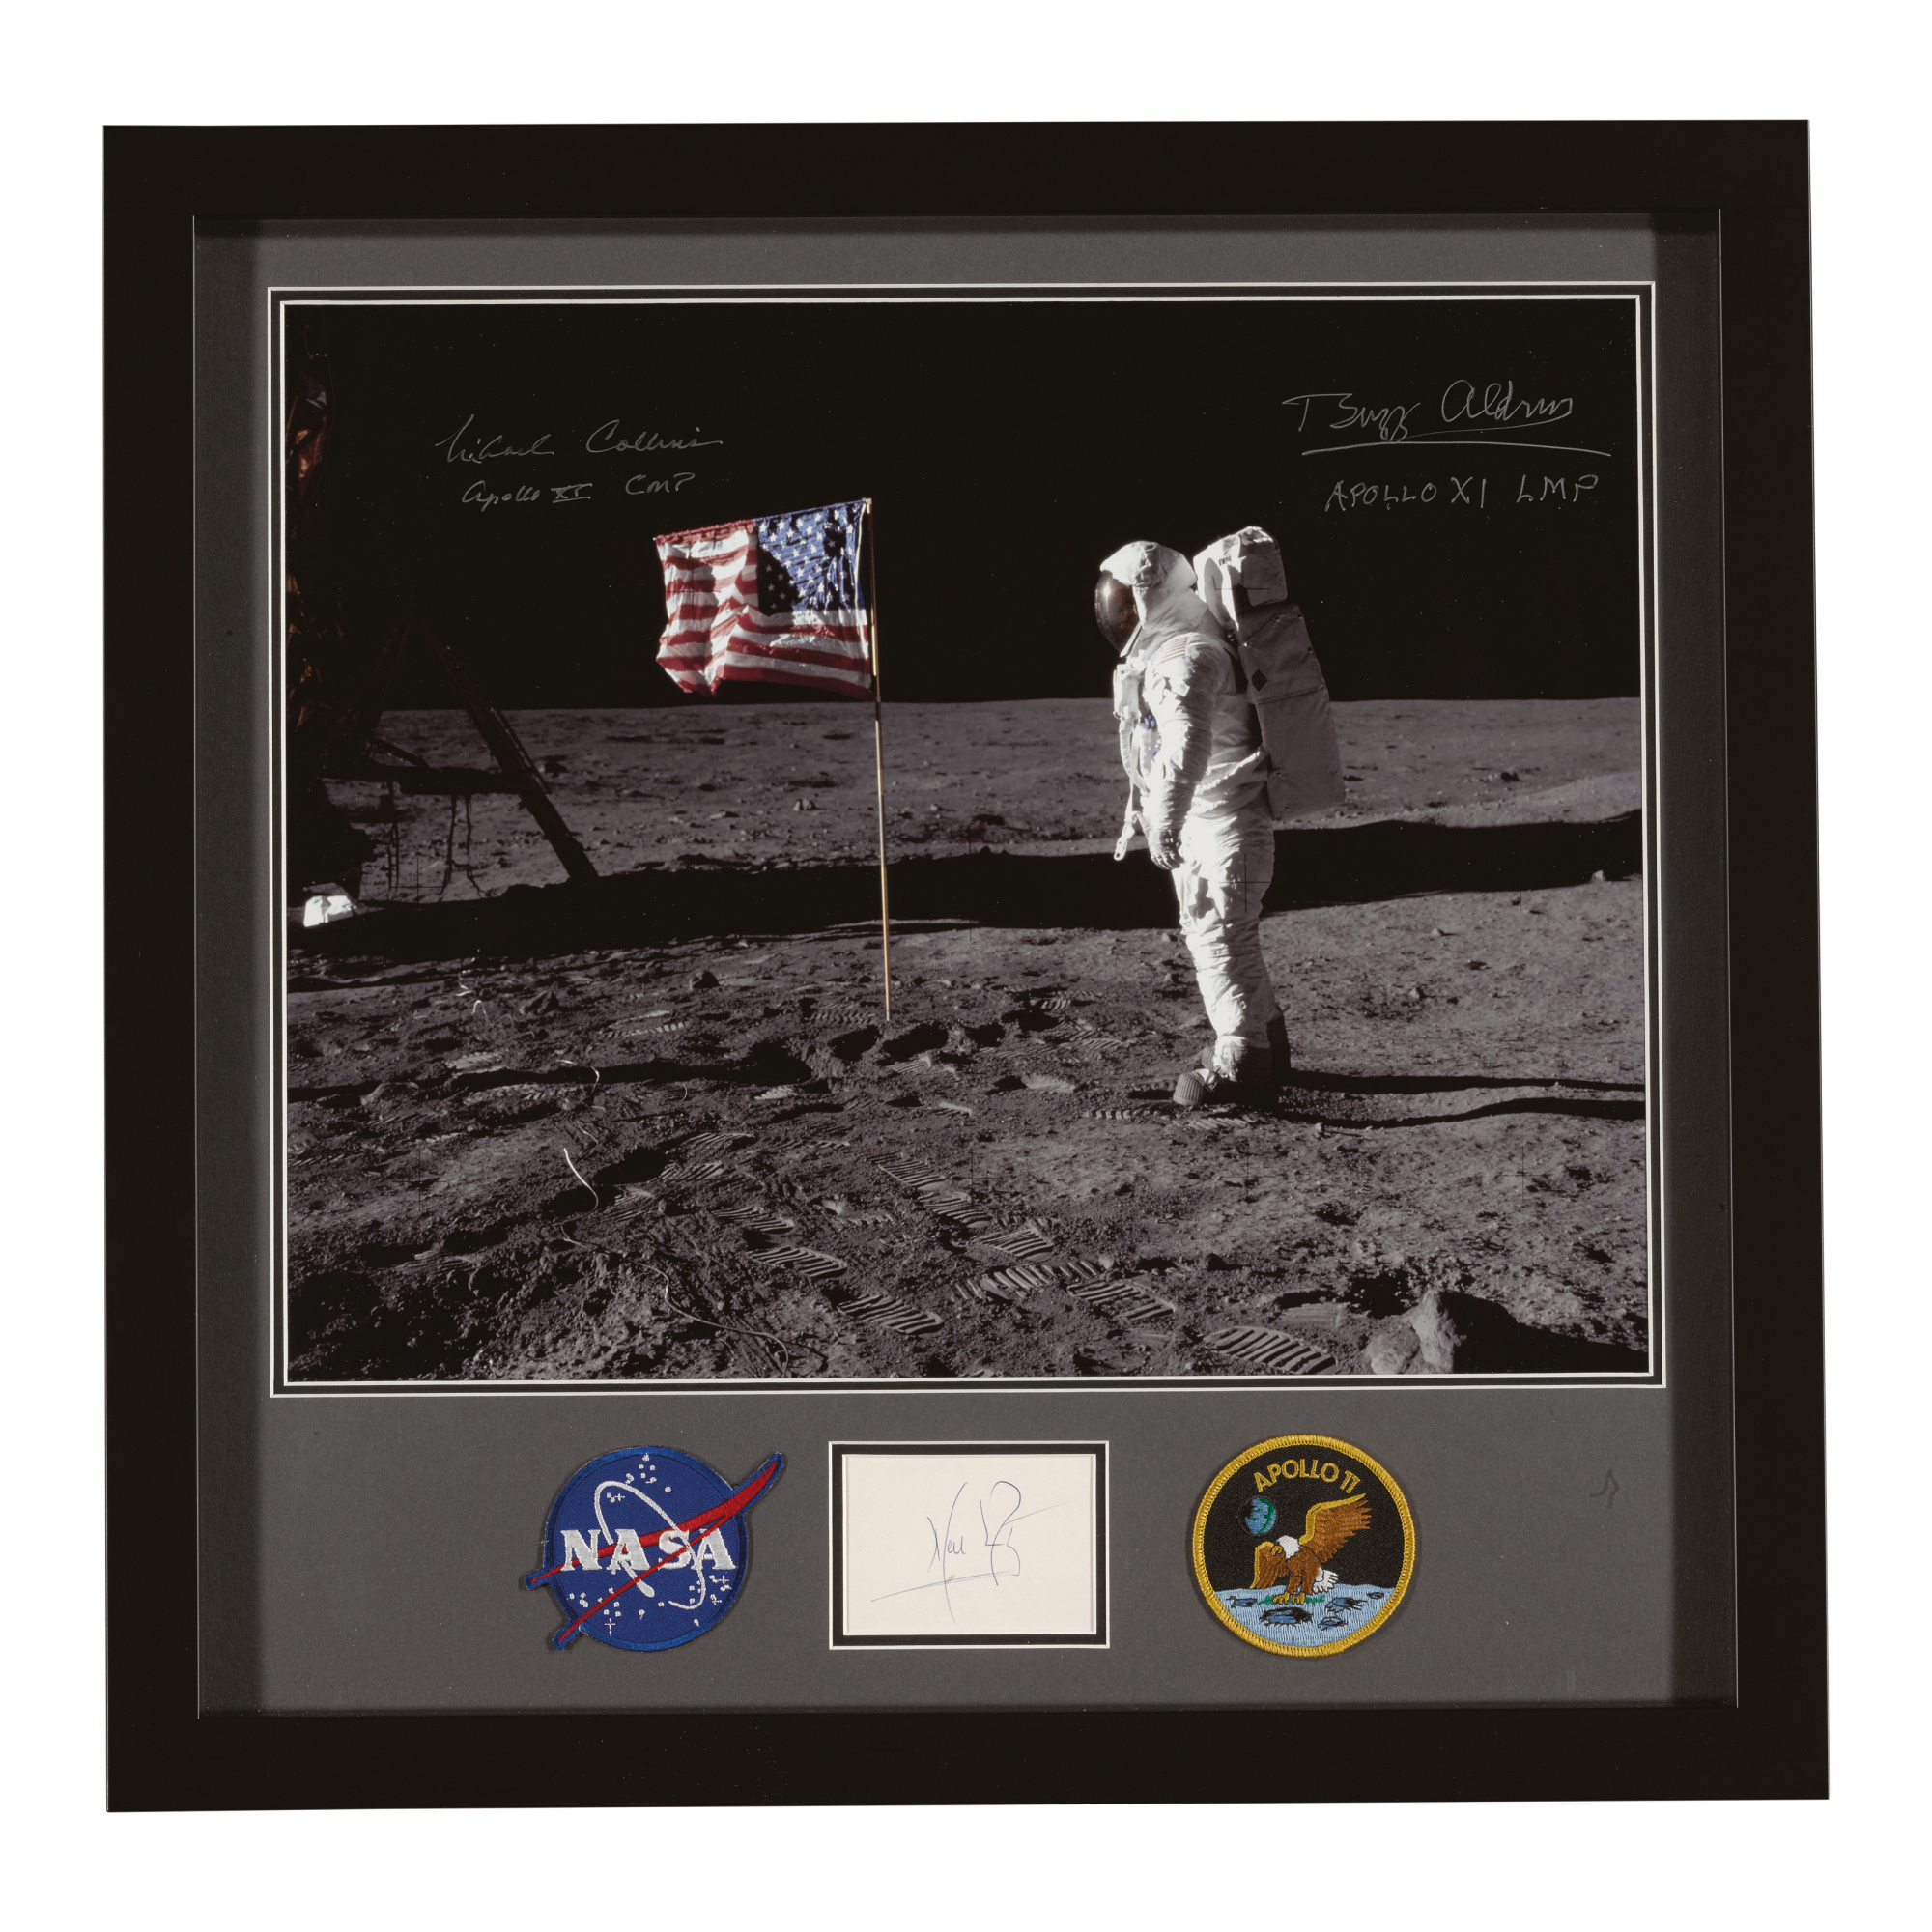 [APOLLO 11]. CREW SIGNED PRESENTATION PHOTOGRAPH AND MISSION EMBLEMS